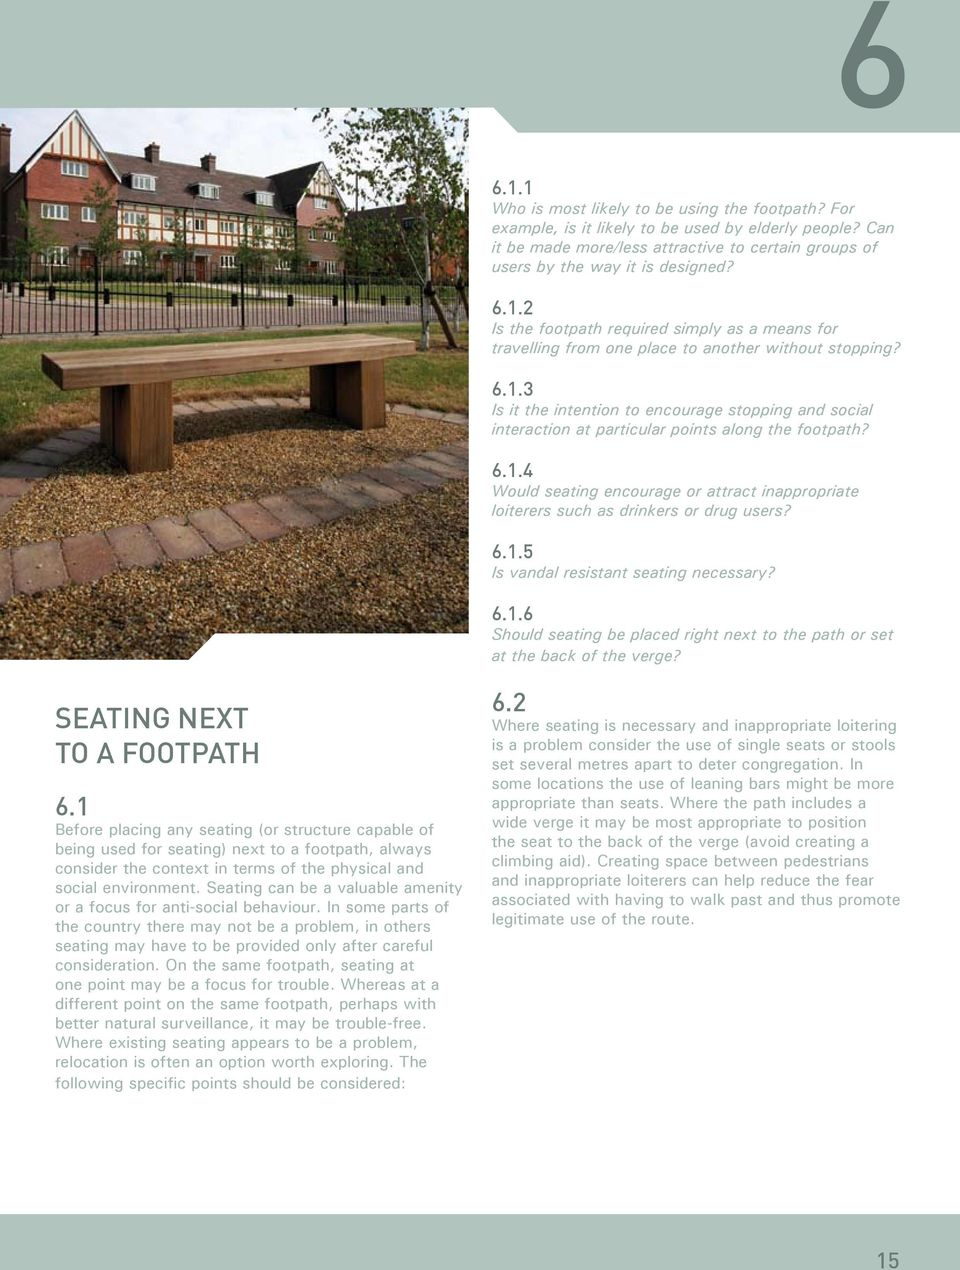 6.1.4 Would seating encourage or attract inappropriate loiterers such as drinkers or drug users? 6.1.5 Is vandal resistant seating necessary? 6.1.6 Should seating be placed right next to the path or set at the back of the verge?